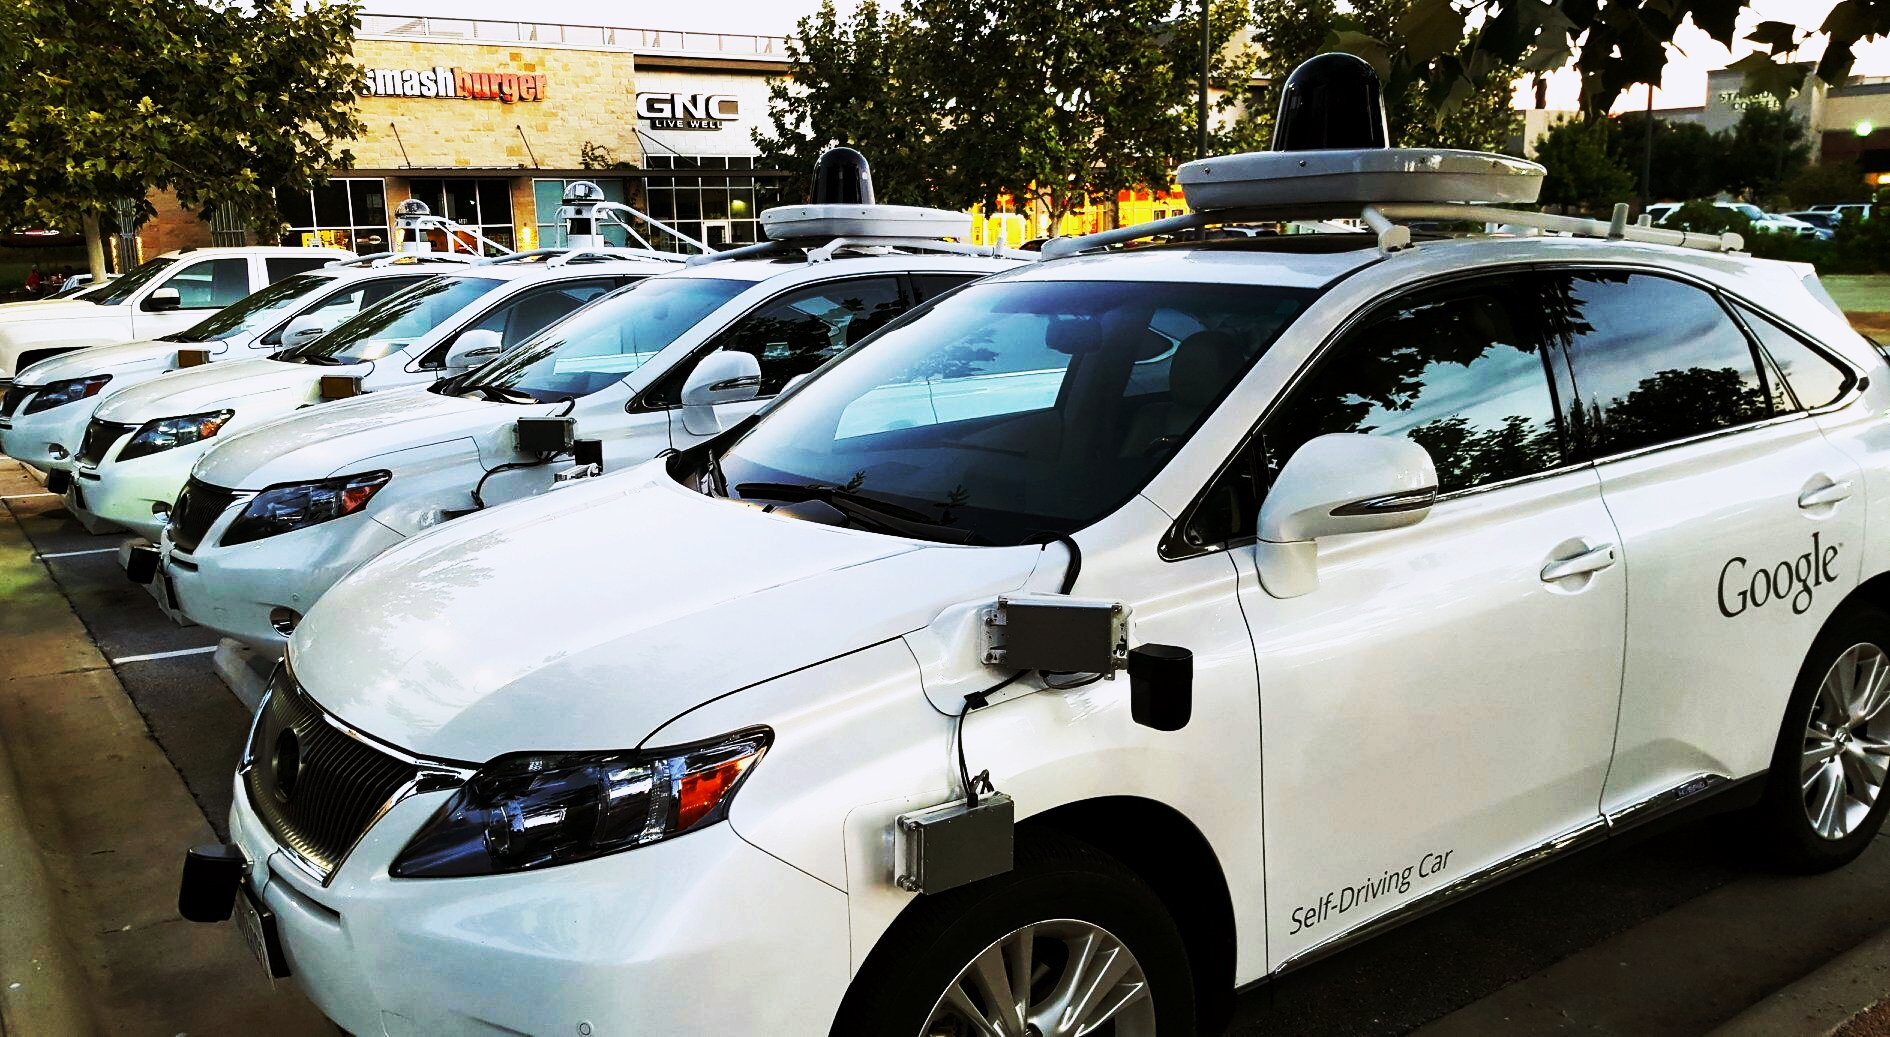 Googl Self Driving Cars Talsk